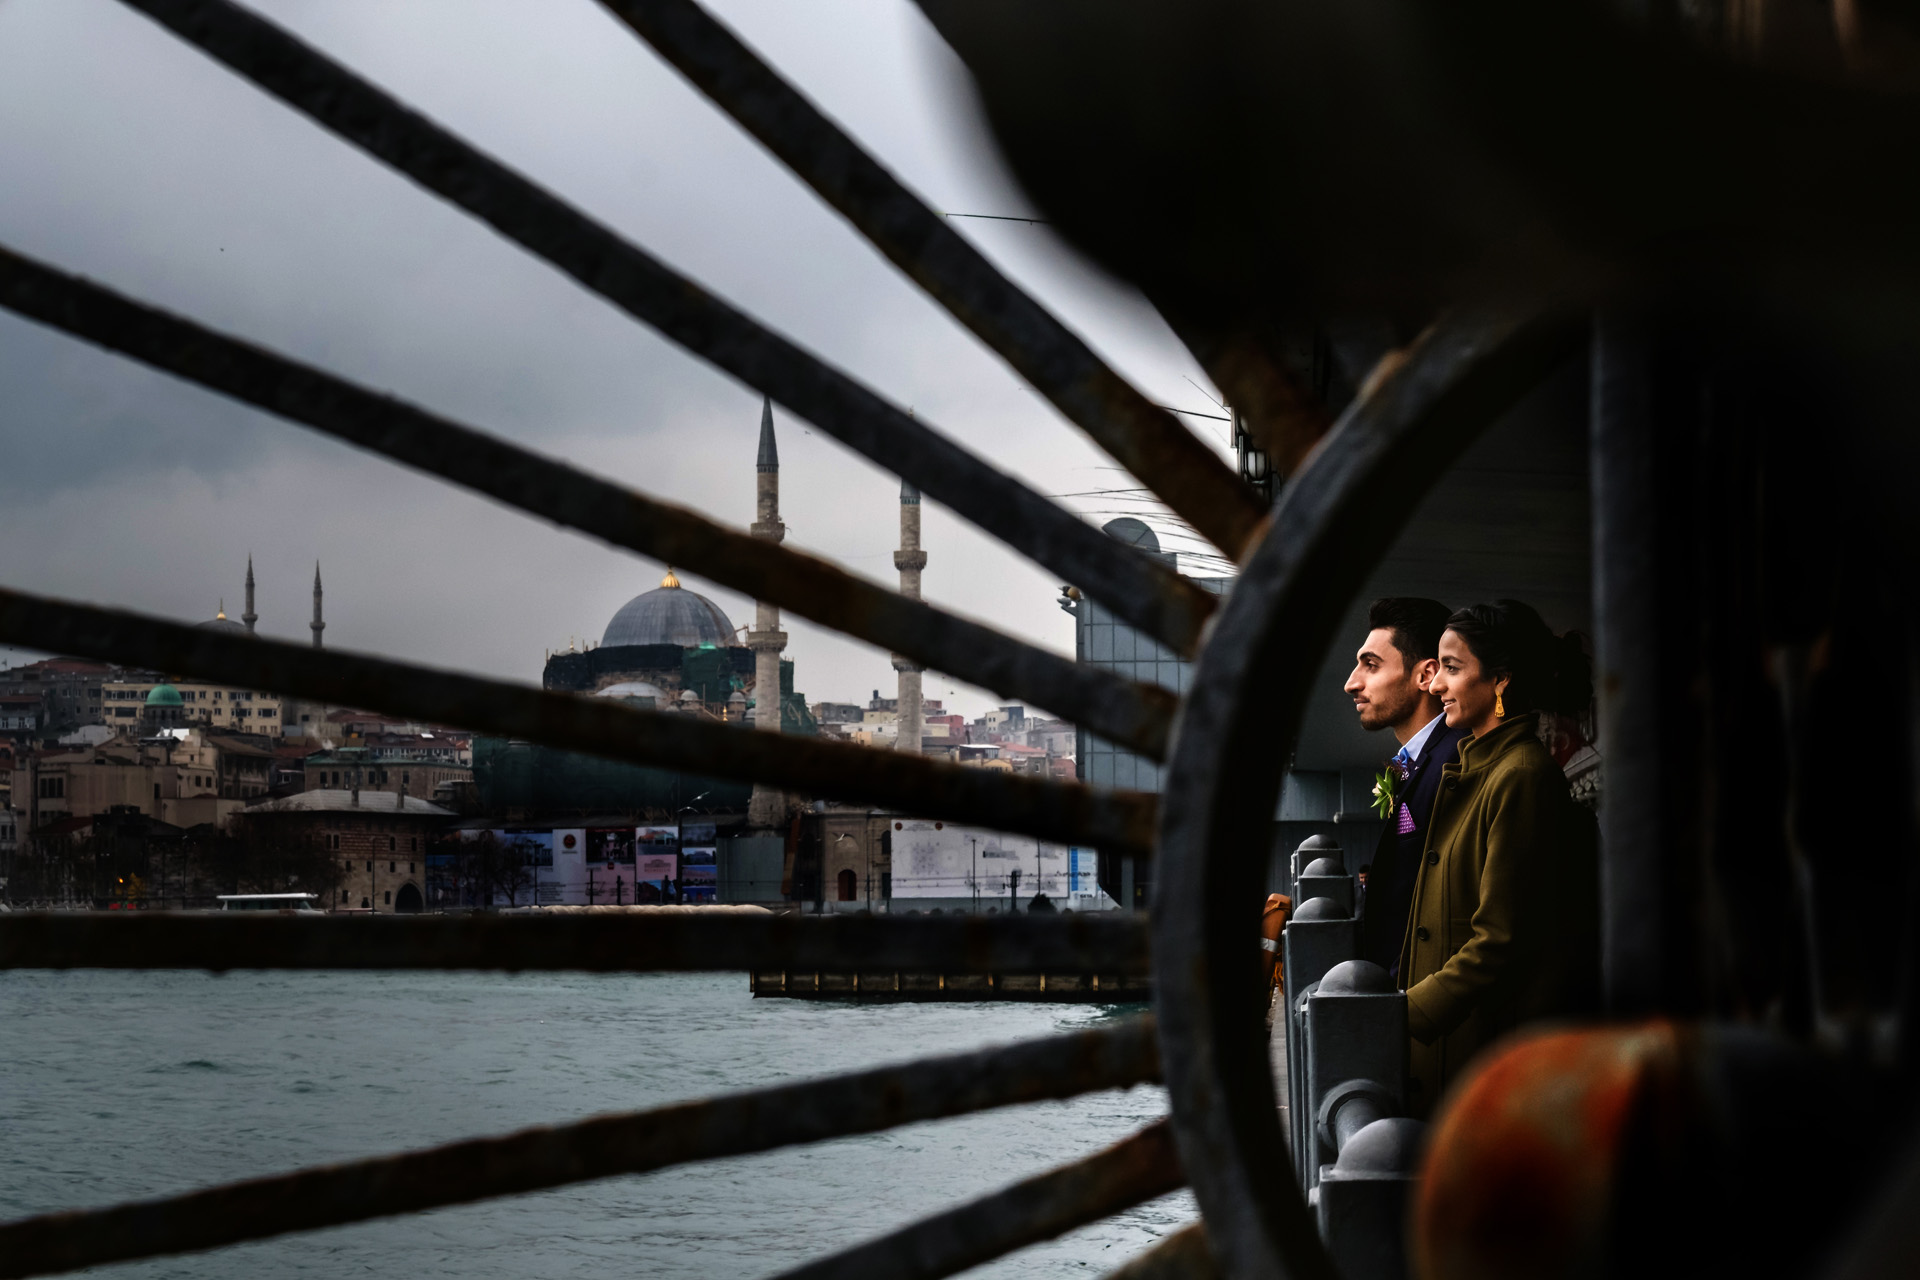 Galata Bridge, Galata, Istanbul, Turkey Elopement Portrait | The couple stands together under the Bridge of Galata in the center of the old town